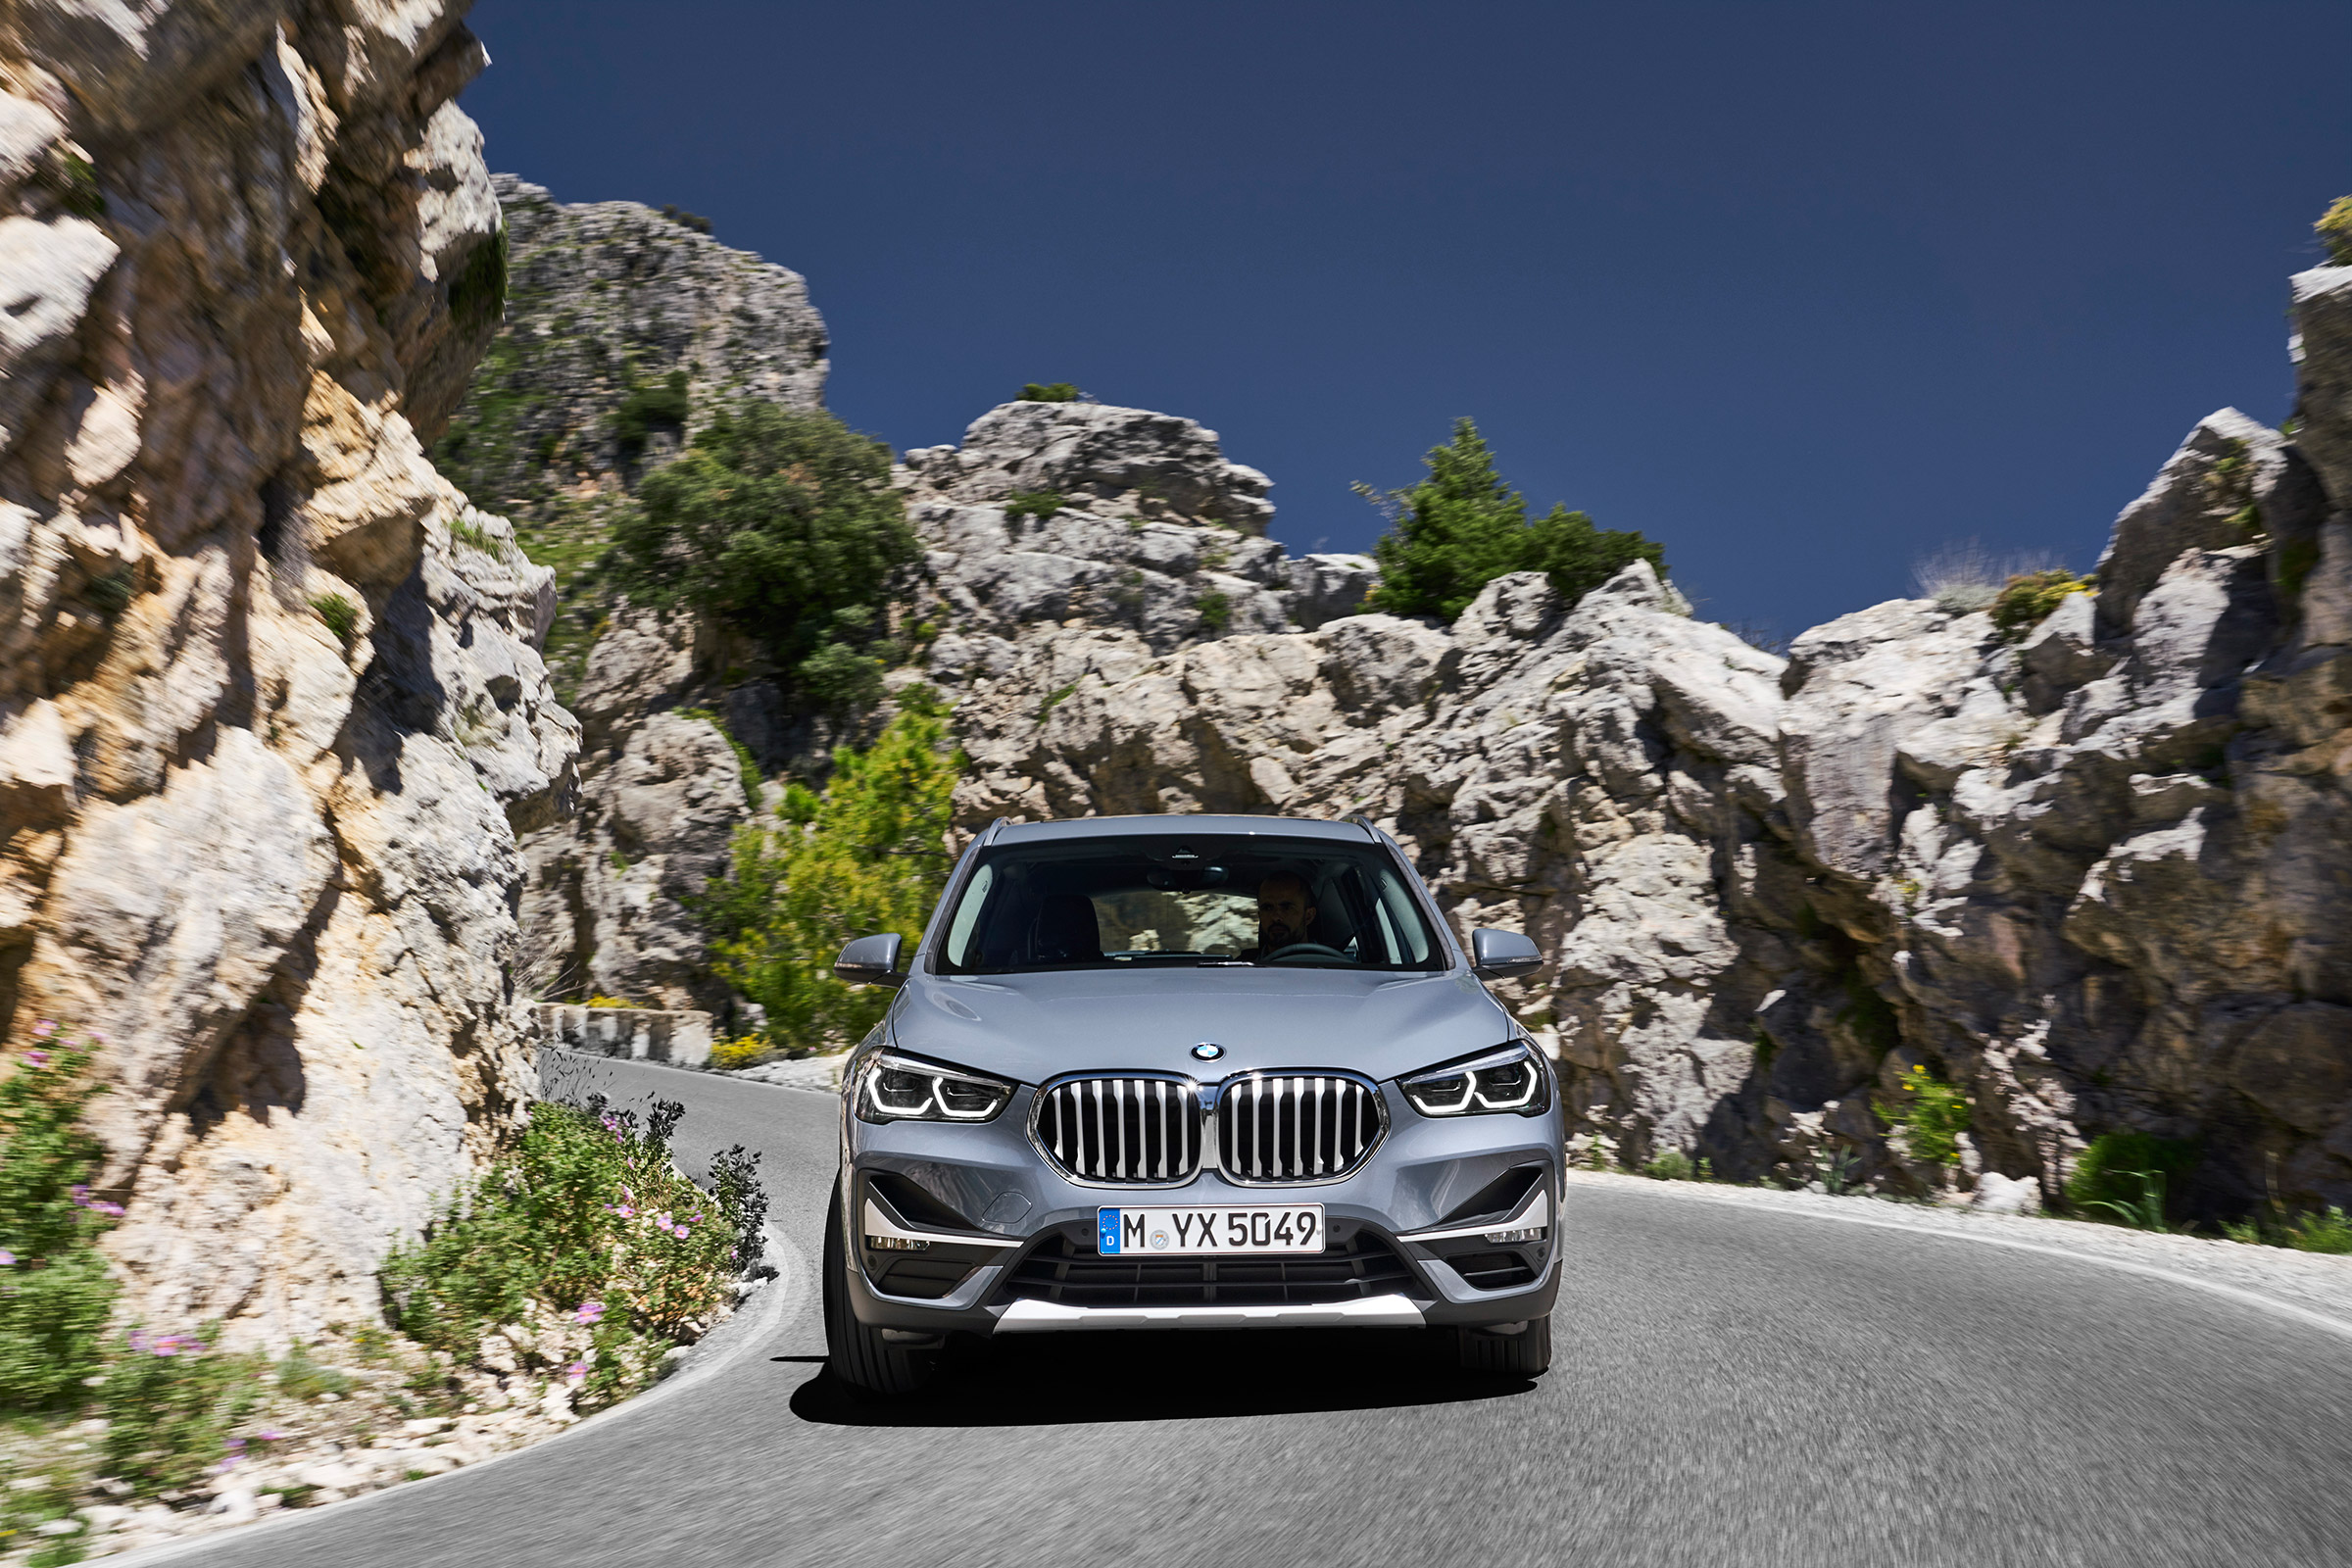 2020 BMW X1: Mid-update, Changes, Release >> 2019 Bmw X1 Facelift Revealed Mid Cycle Update For Audi Q3 Rival Evo